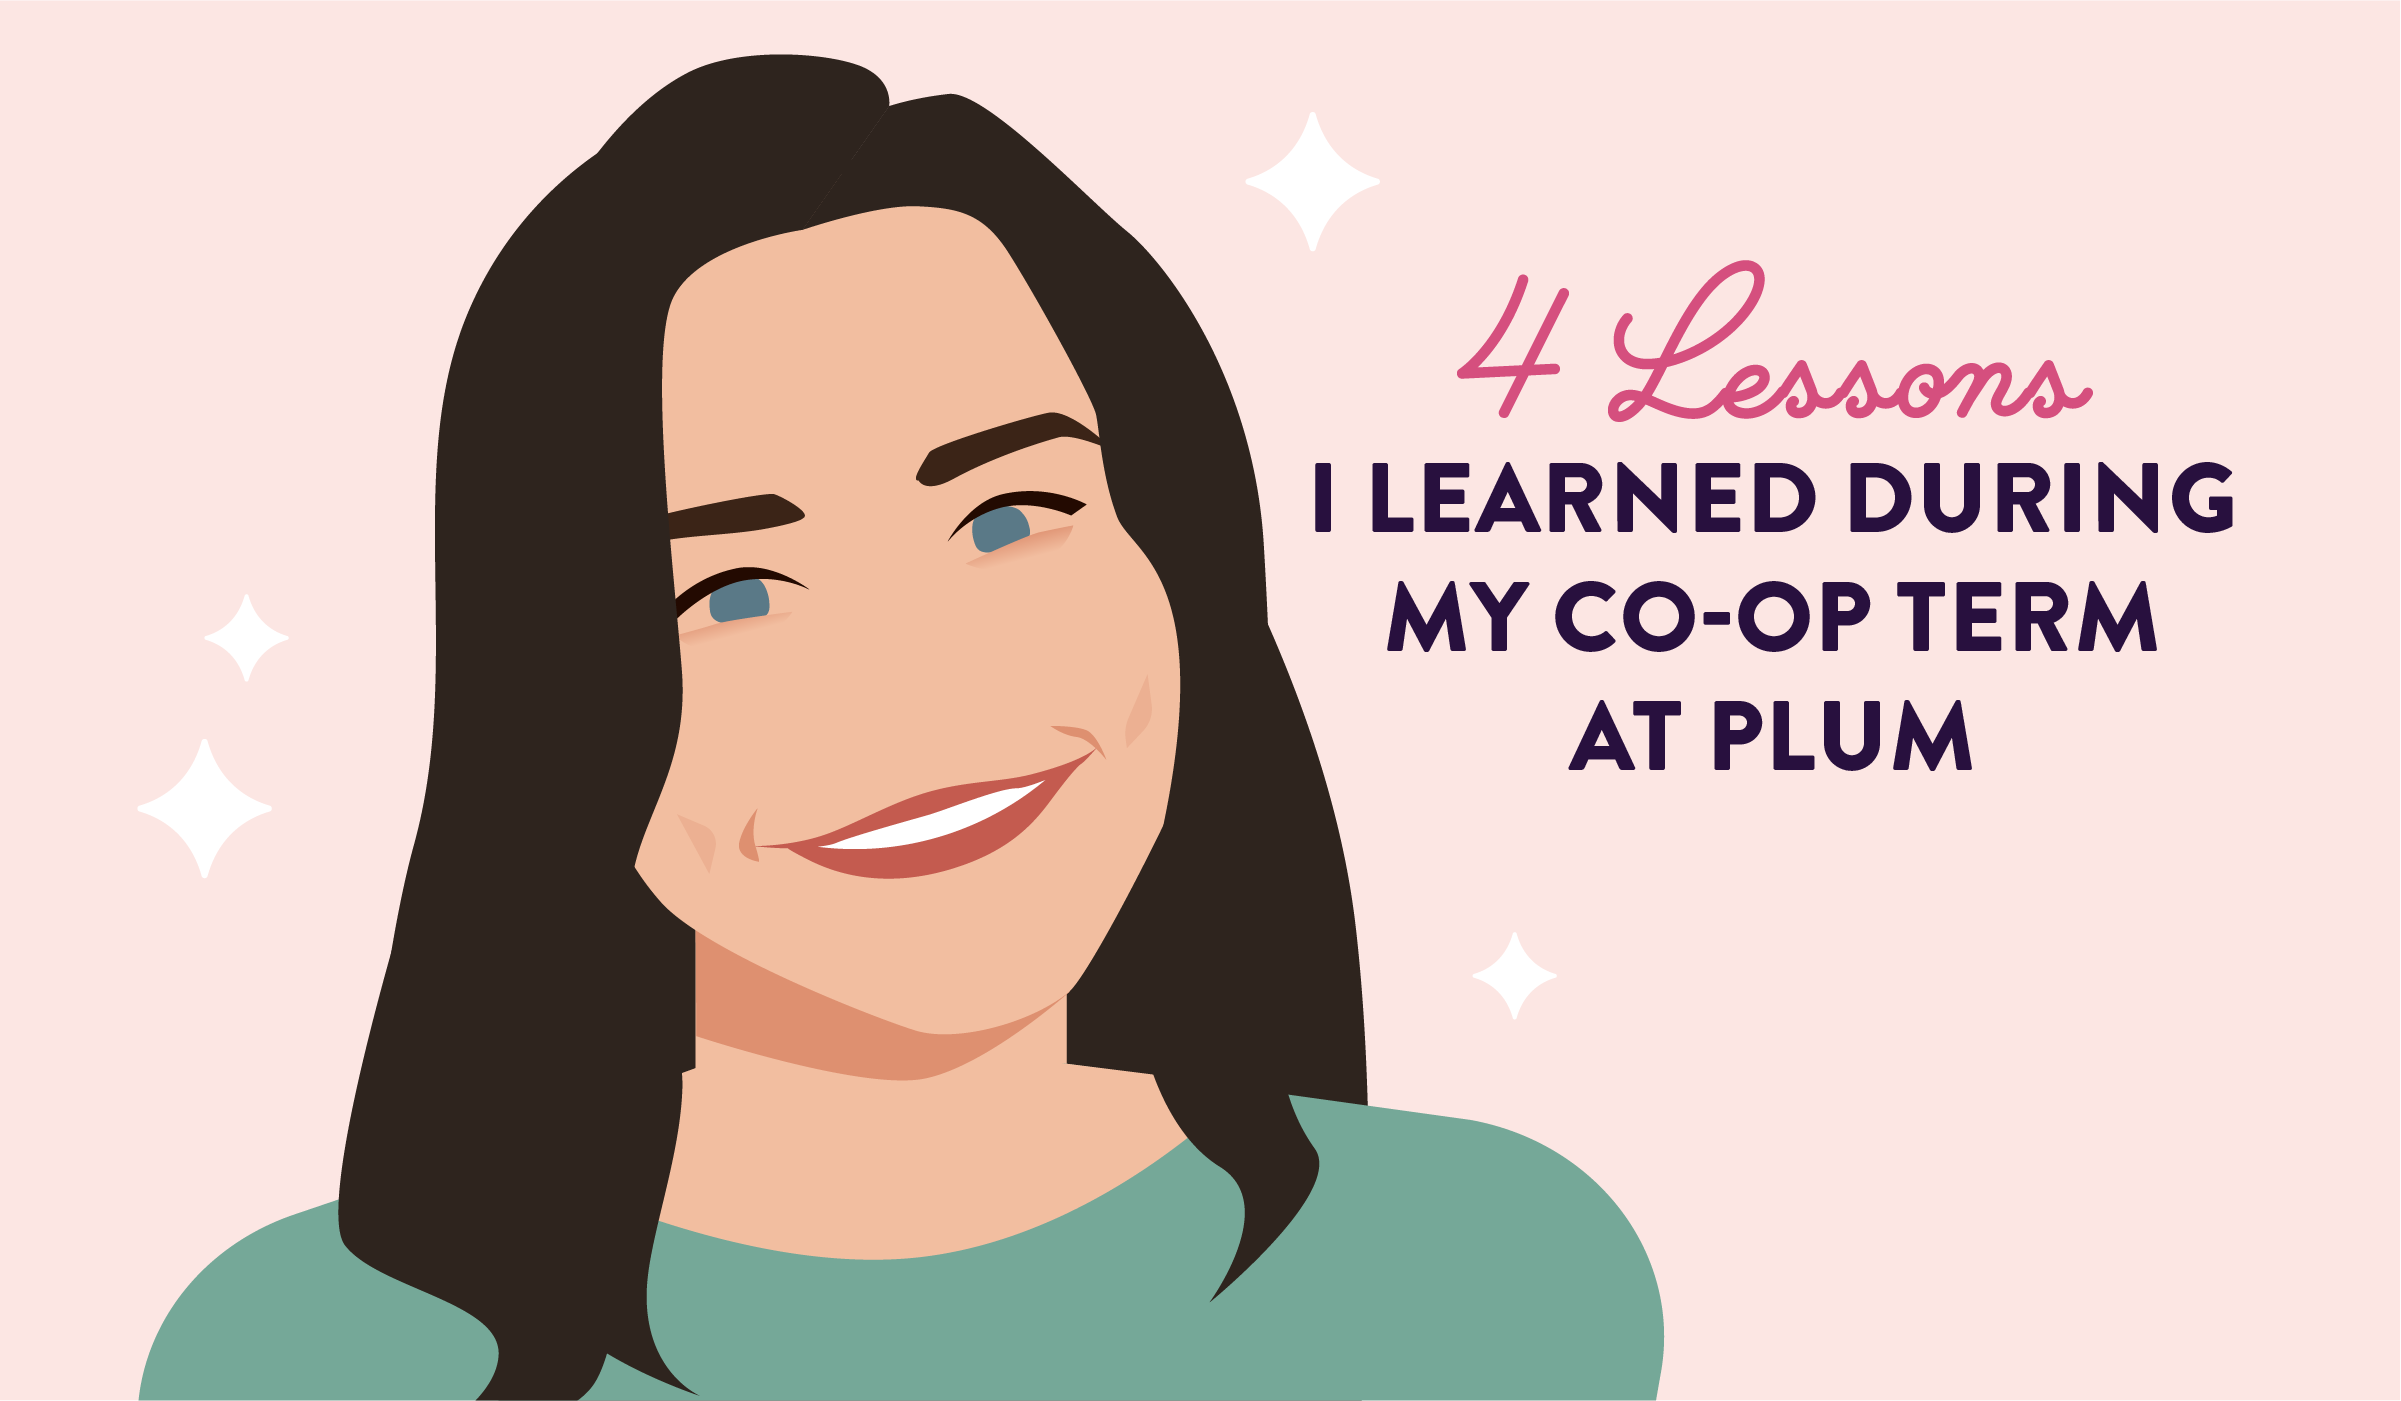 4 Lessons I Learned During My Co-Op Term at Plum